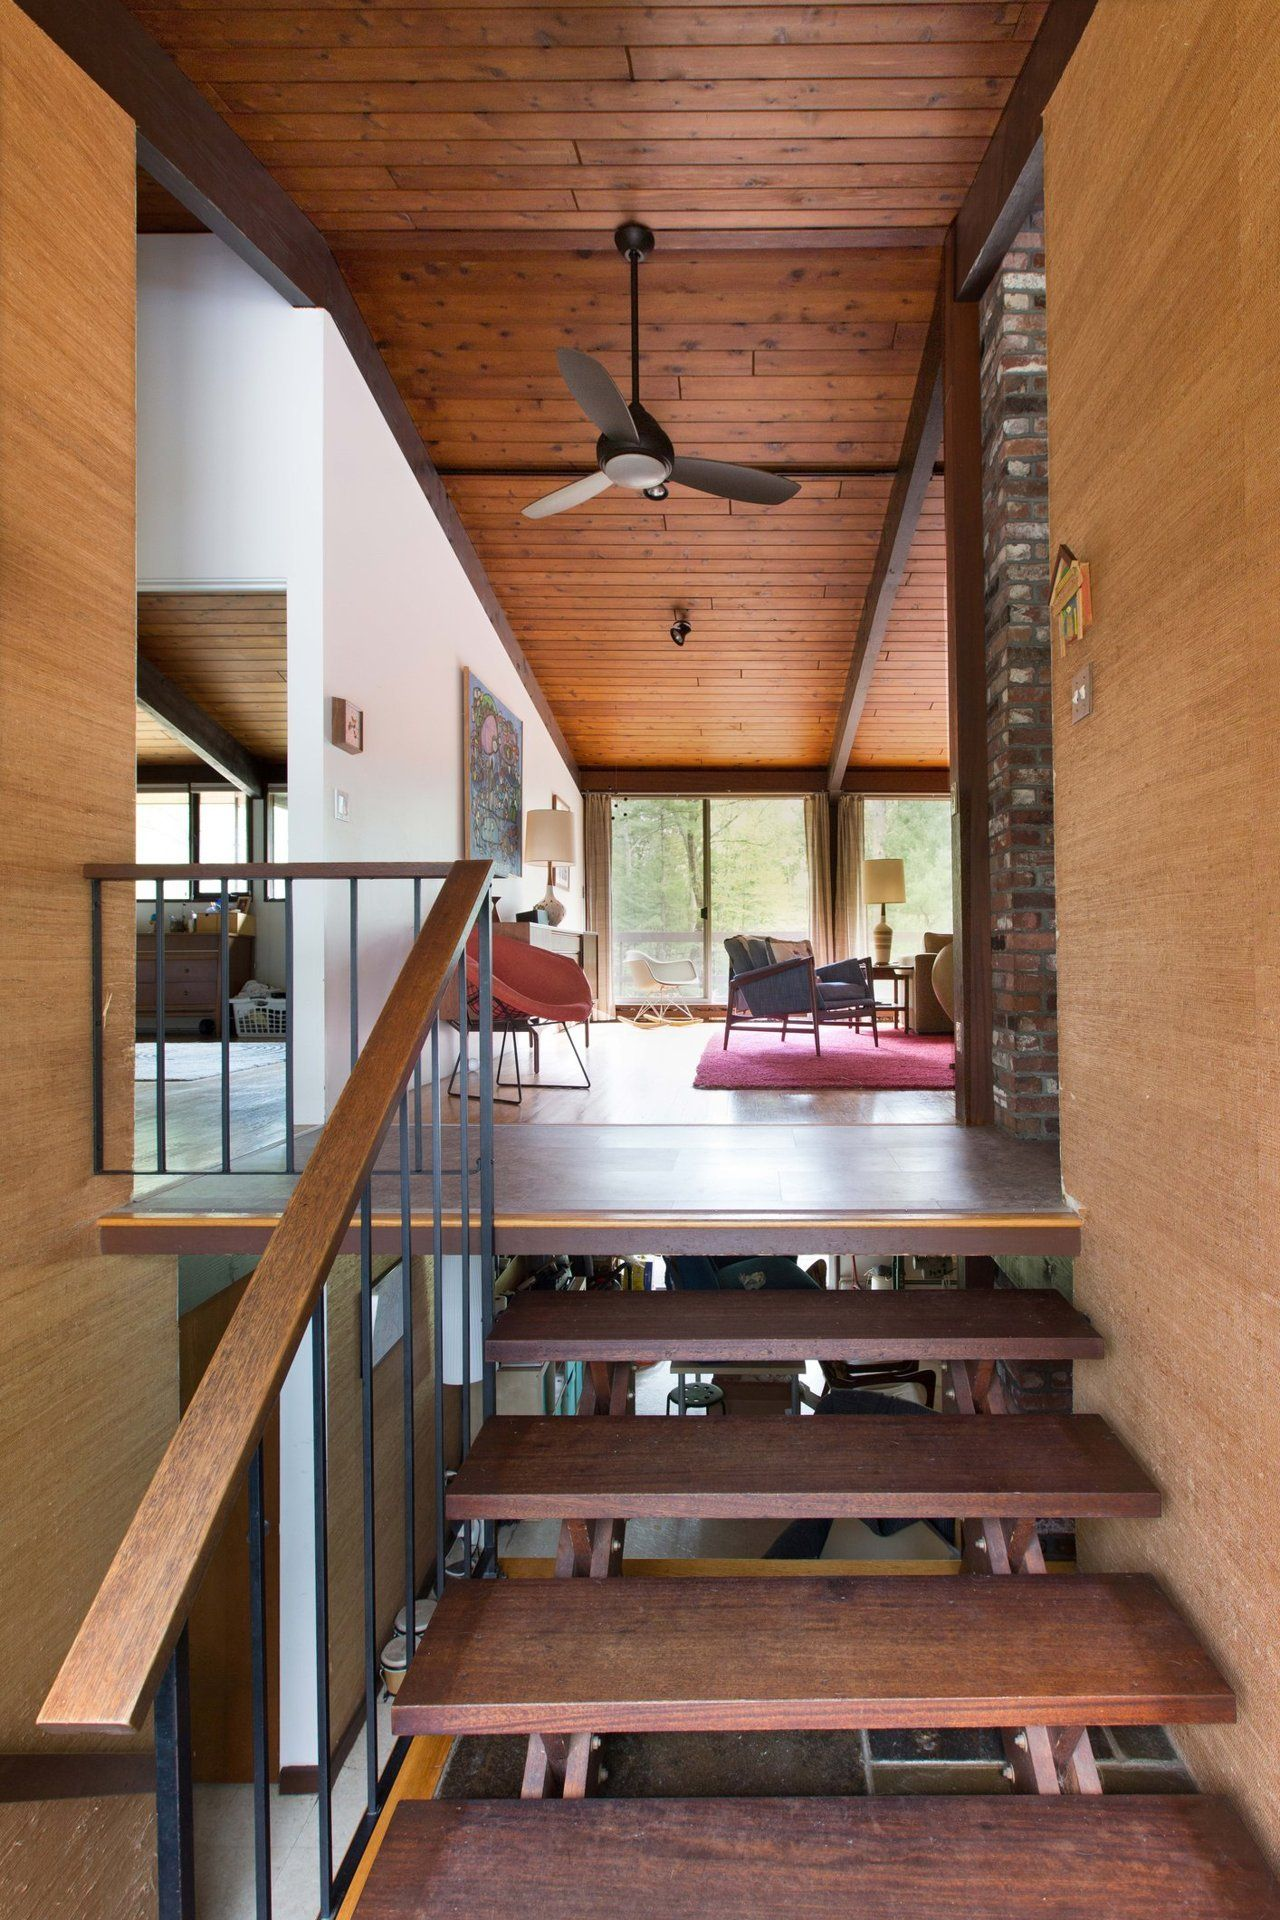 A Split Level Staircase At The Main Entrance Provides Sight Lines To Both  Levels Of The House.